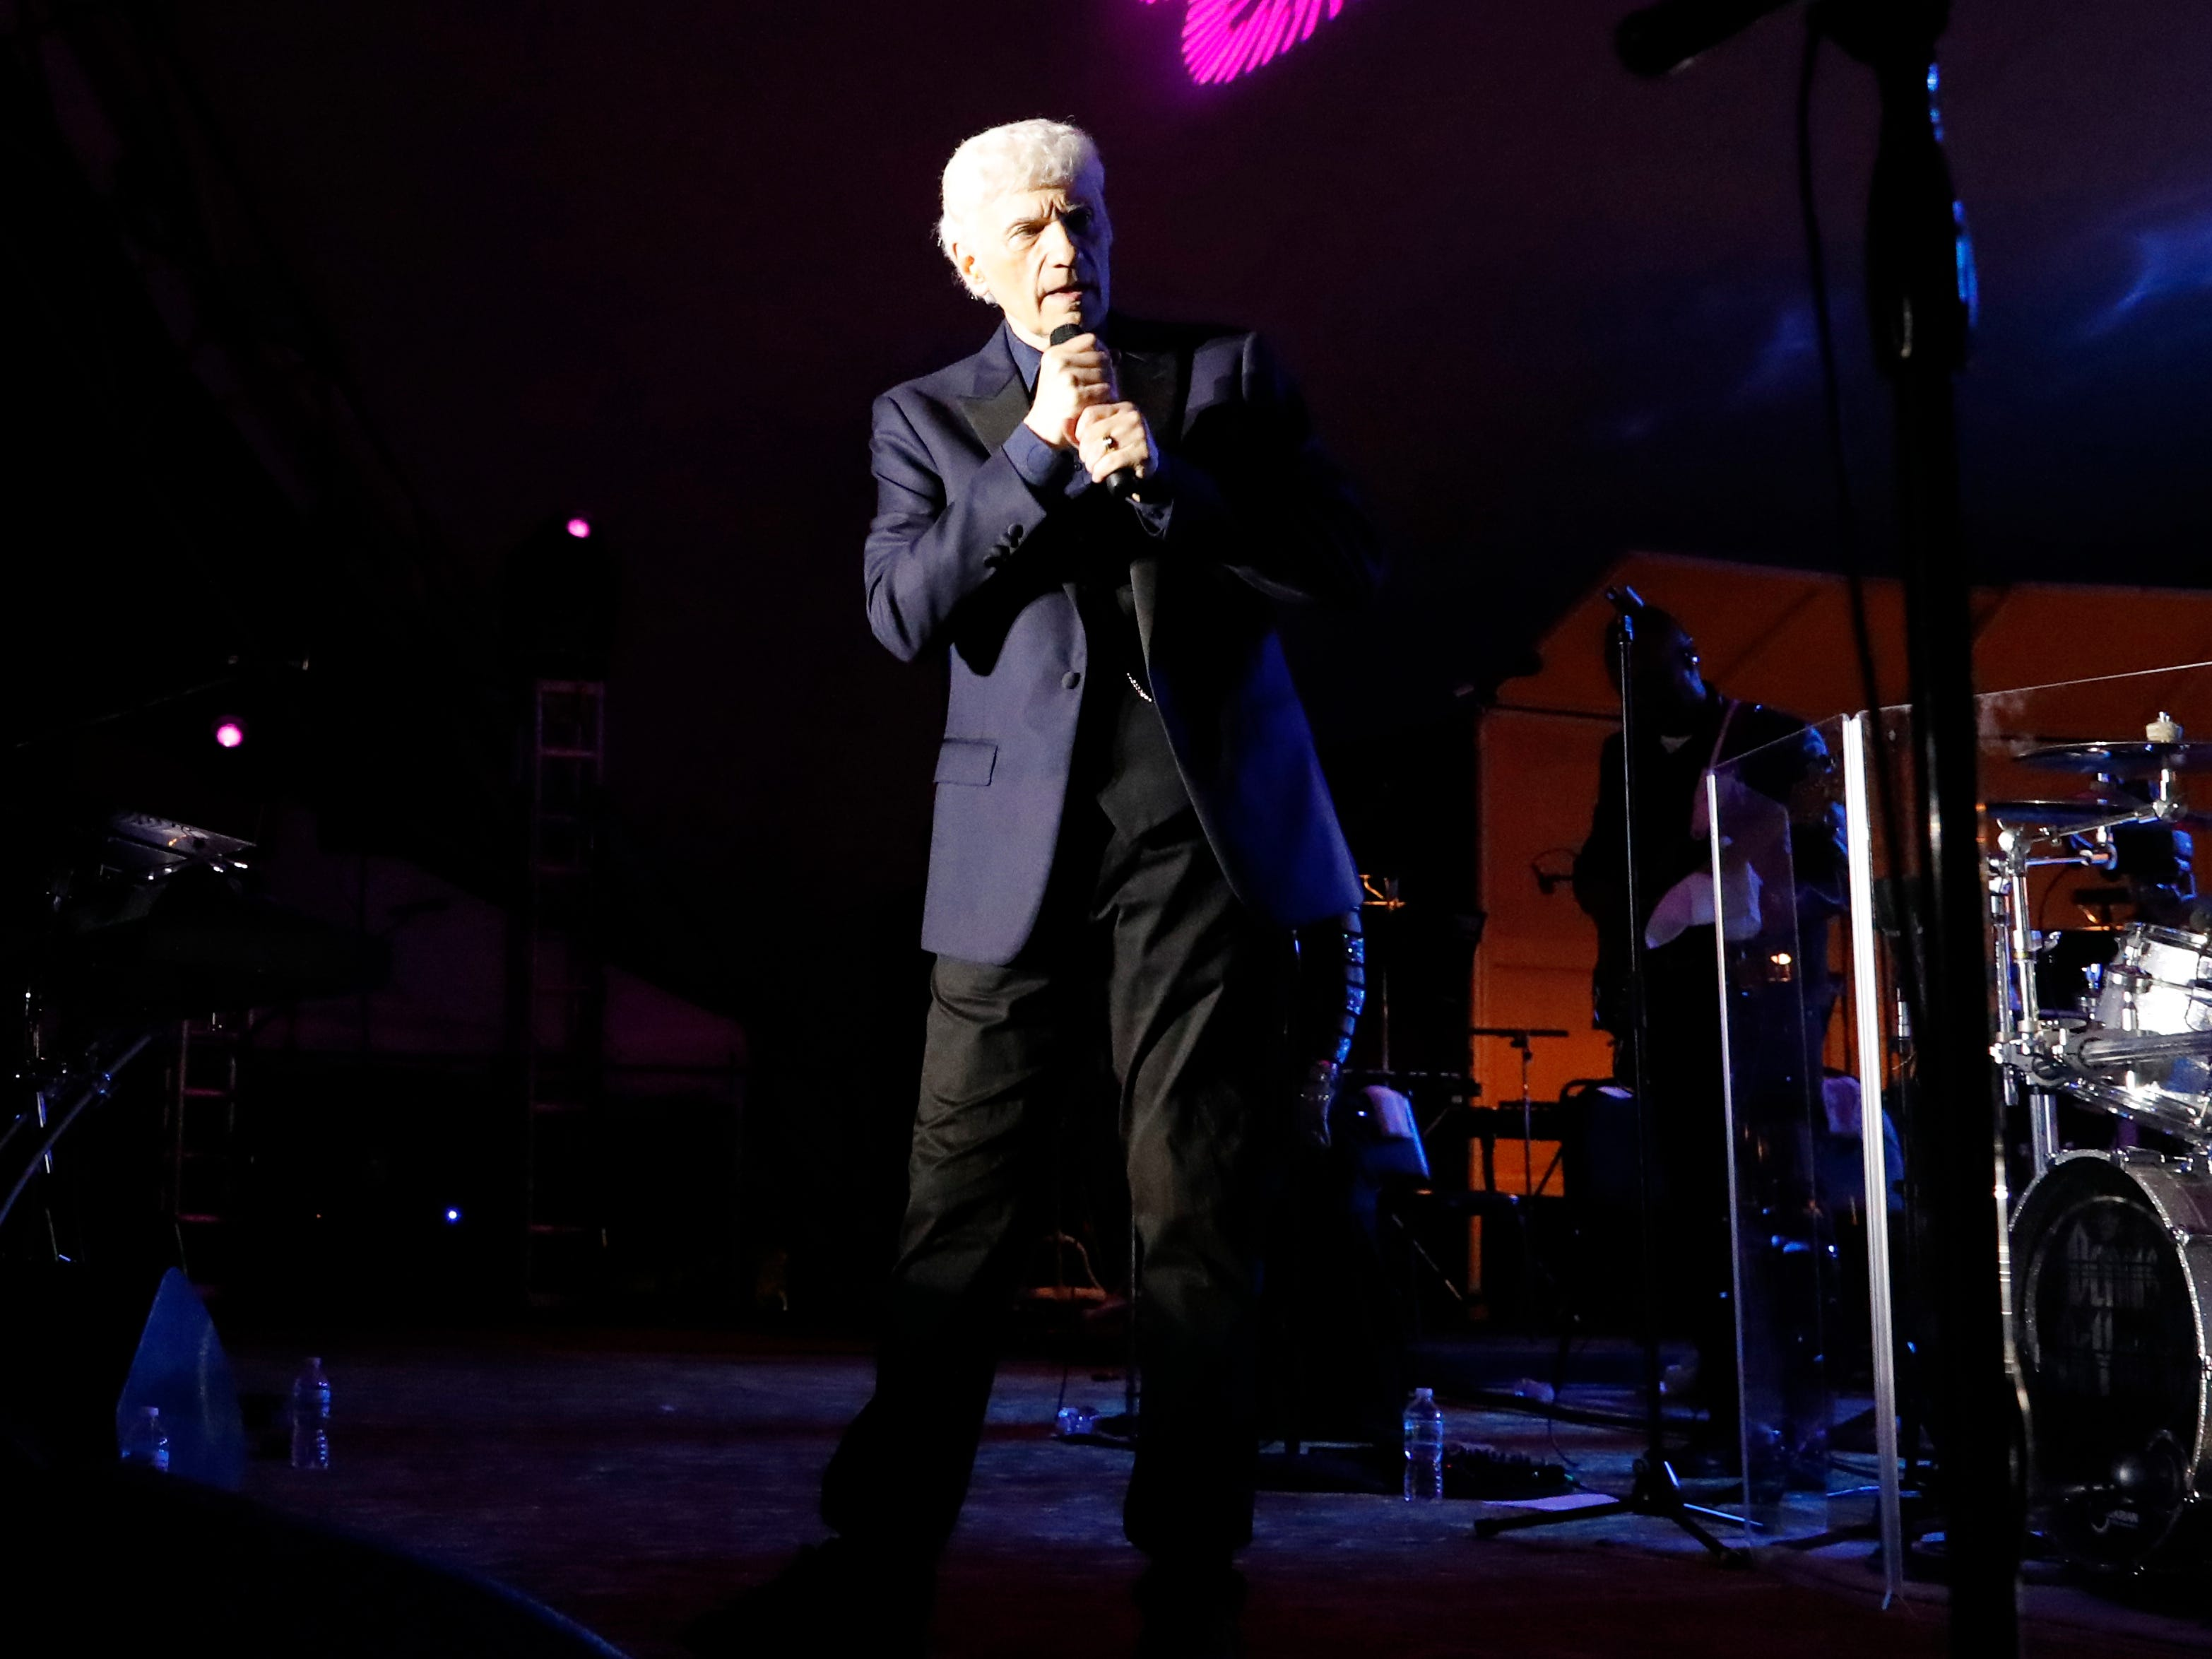 Dennis DeYoung, a founding member of the band Styx, peformed at the first headline concert of the 2018 Lancaster Festival Saturday night, July 21, 2018, at the Ohio University Lancaster Wendel Concert Stage in LancasteDennis DeYoung, a founding member of the band Styx, performed at the first headline concert of the 2018 Lancaster Festival Saturday night, July 21, 2018, at the Ohio University Lancaster Wendel Concert Stage in Lancaster.r.